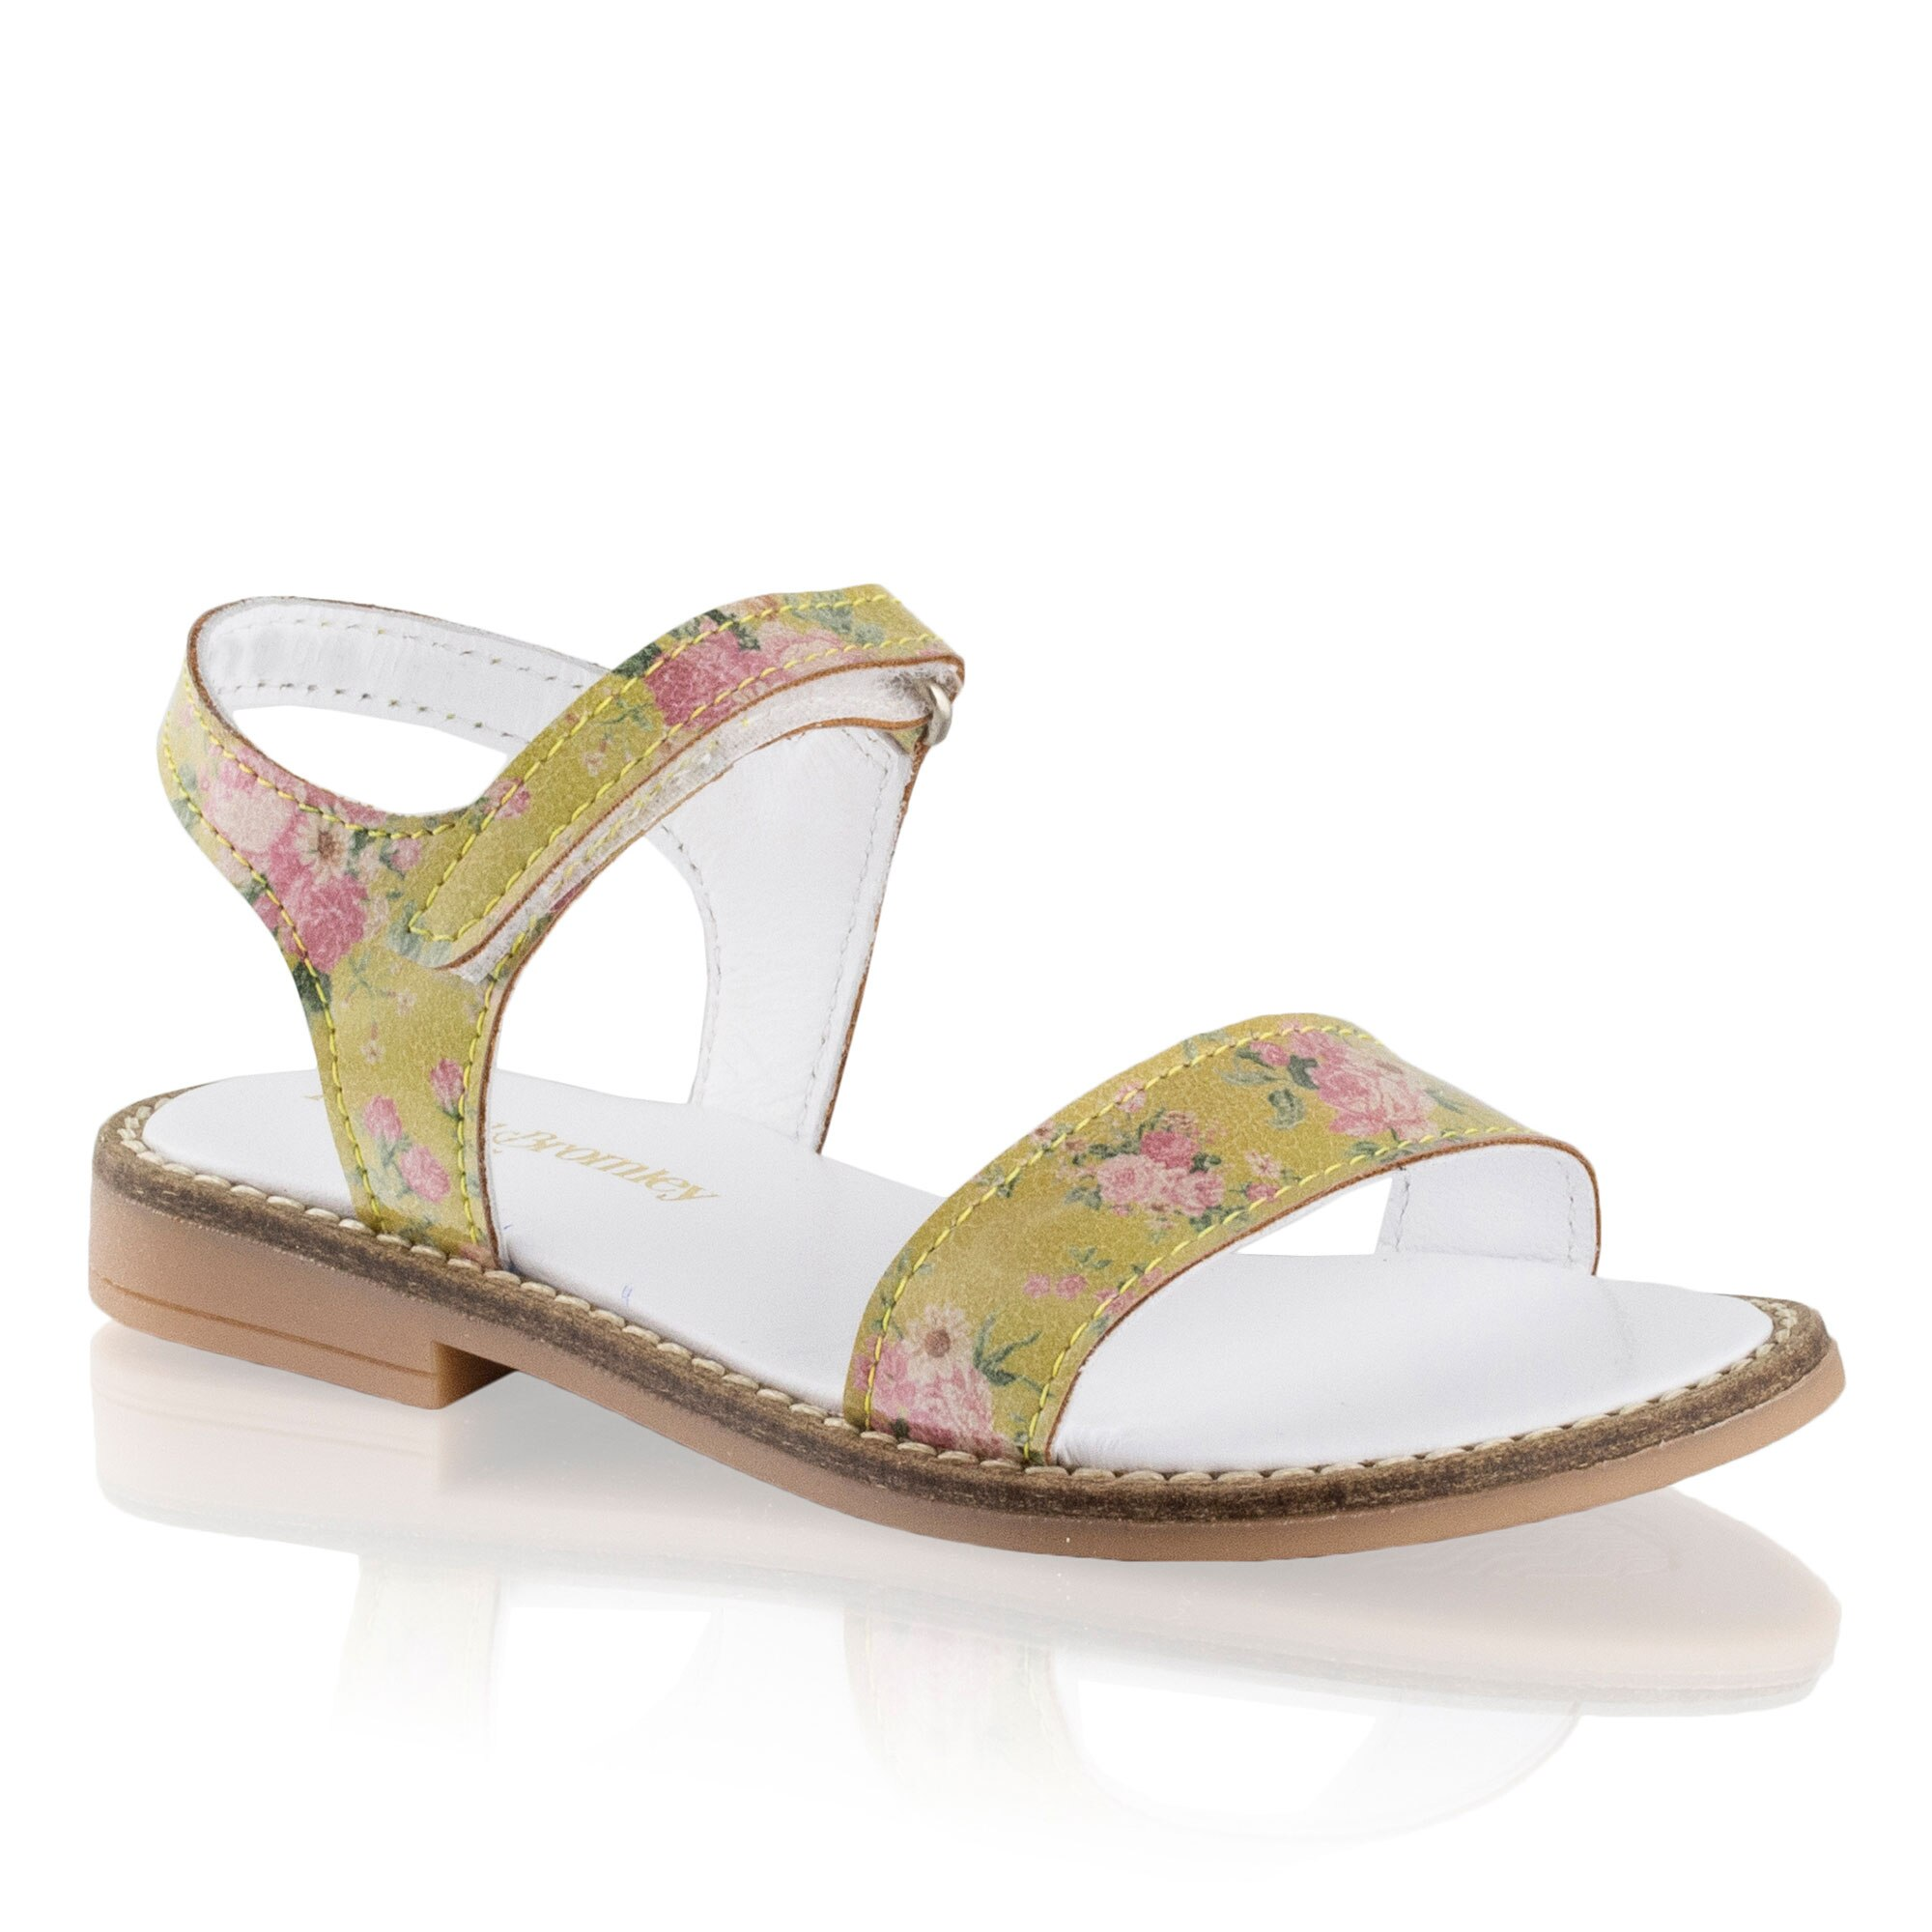 Russell and Bromley POSEY Flower Detail Open Sandal